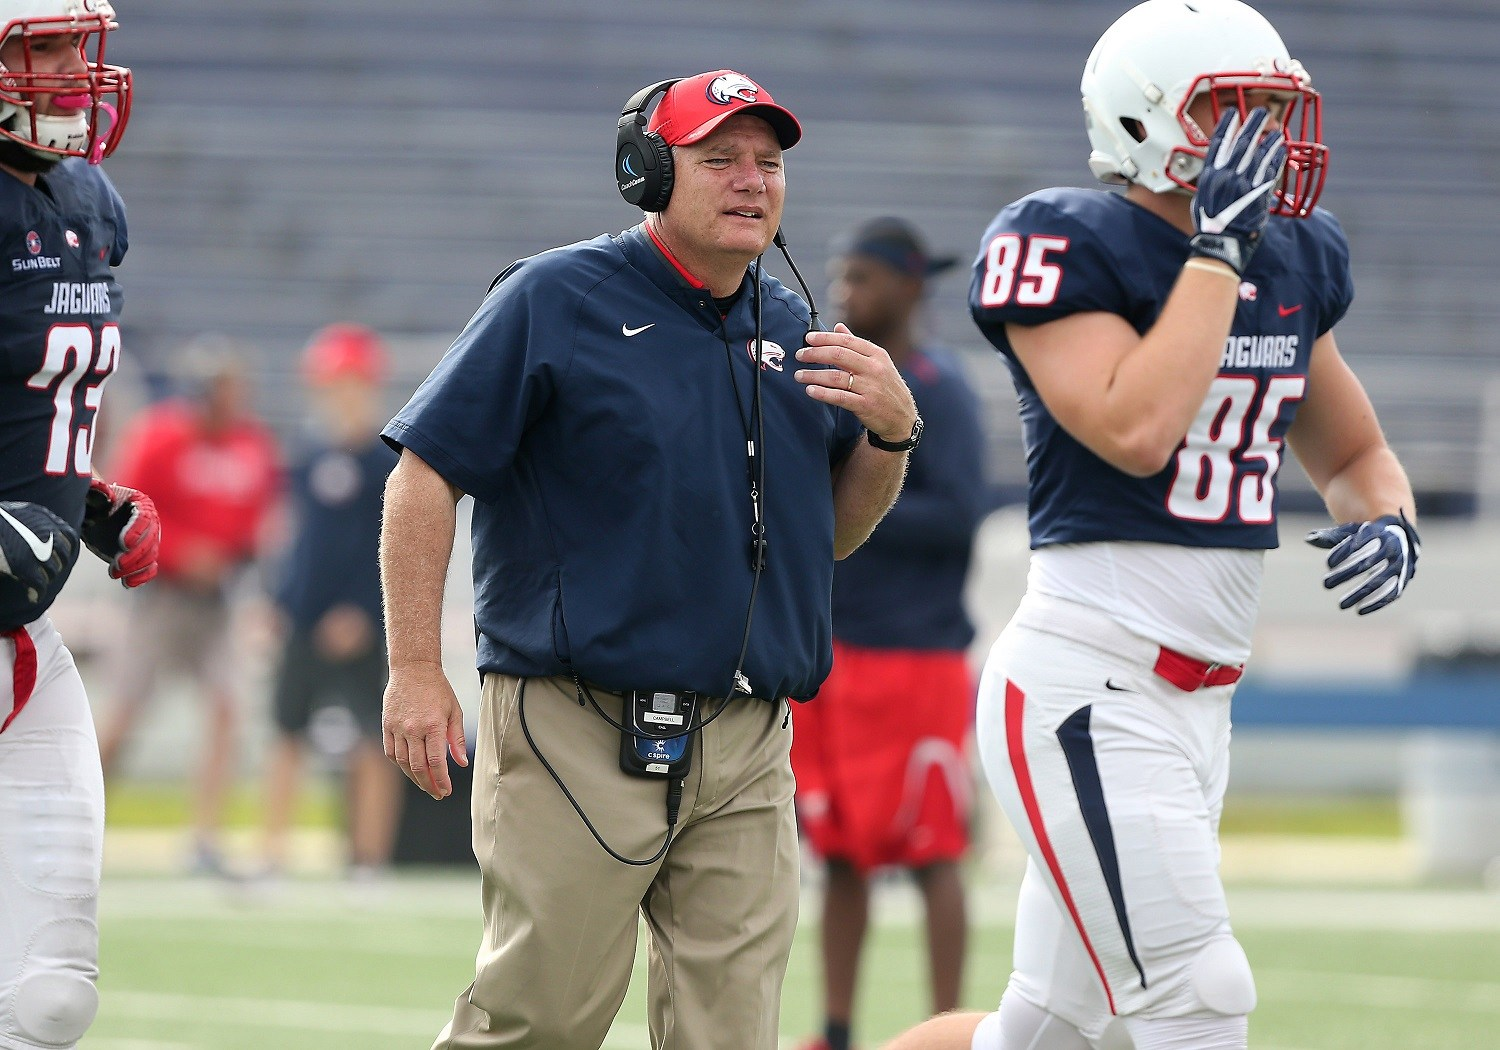 WNSP interview with South Alabama head coach, Steve Campbell!